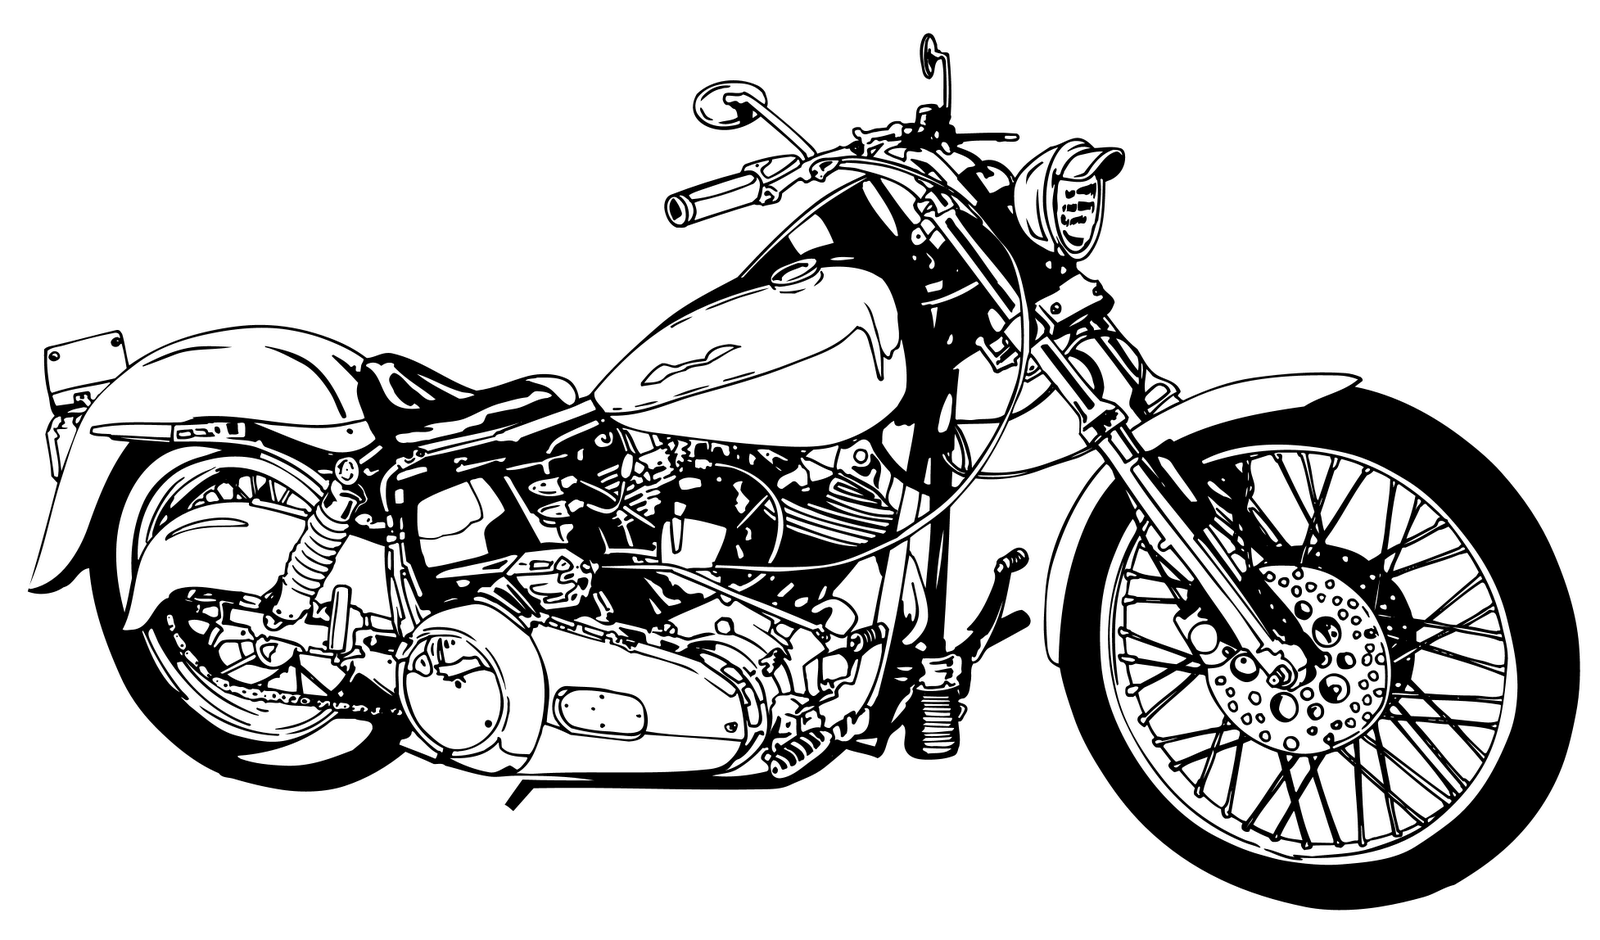 Harley Davidson clipart motorcycle chopper #5